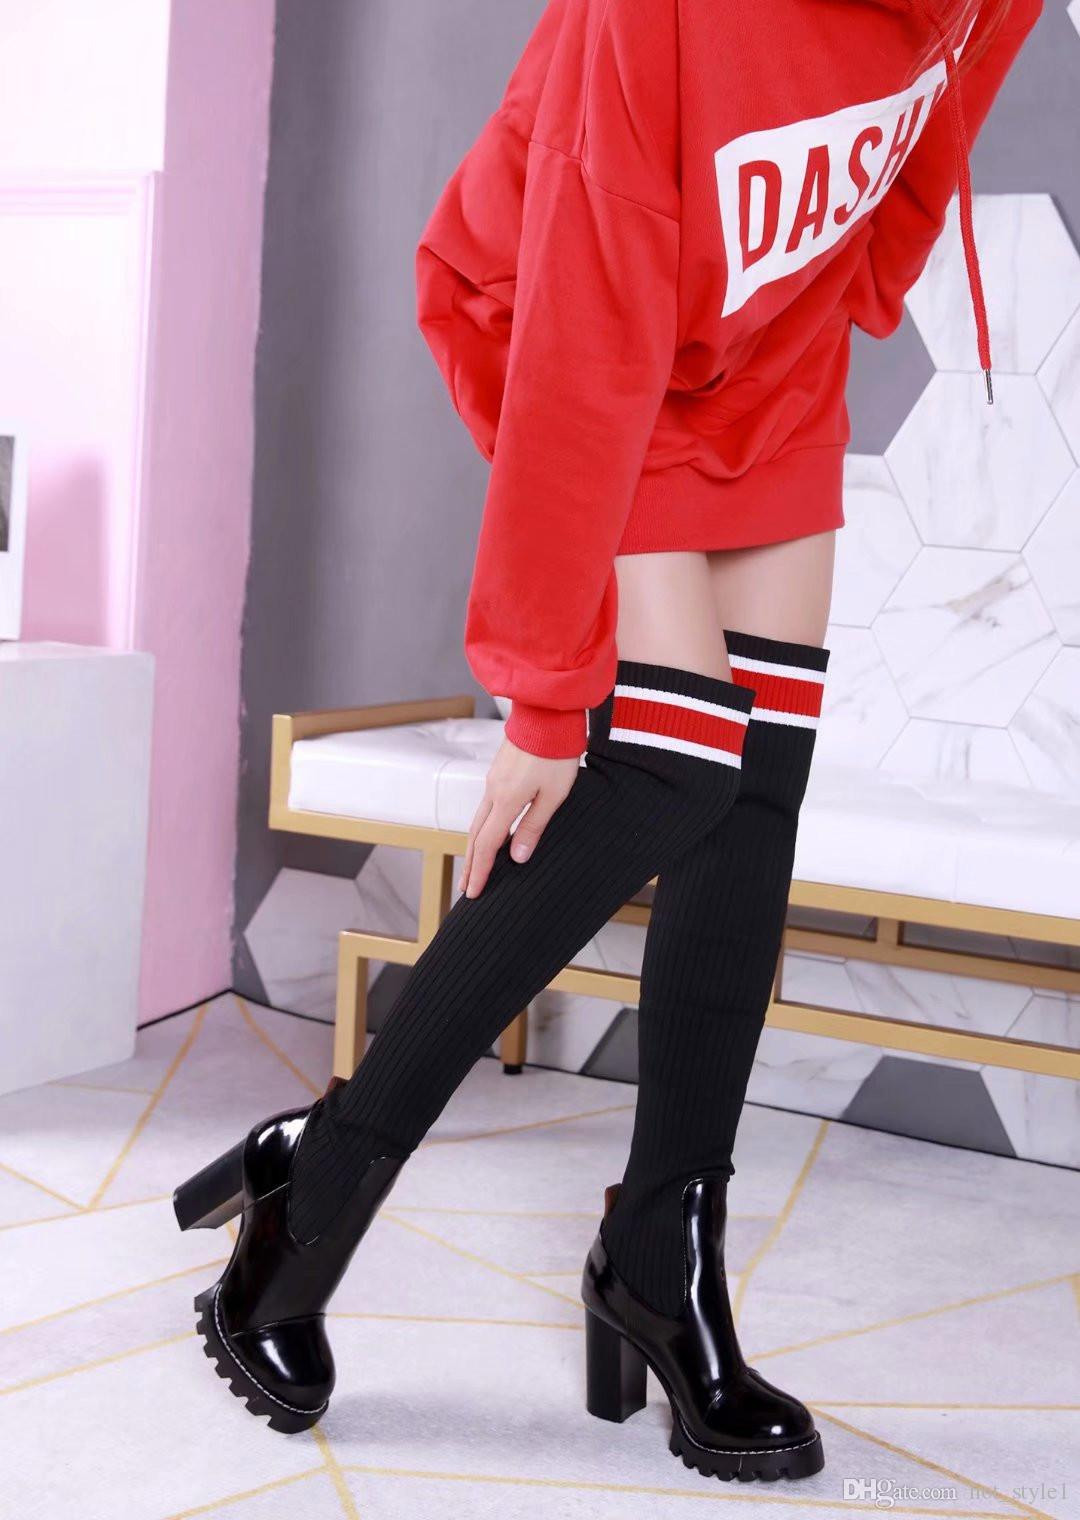 European brand Woman Autumn Winter Fashion Chunky Heel Over Knee Boots Femal Mixed Color Patent Leather Elastic Sock Long Sock Boots